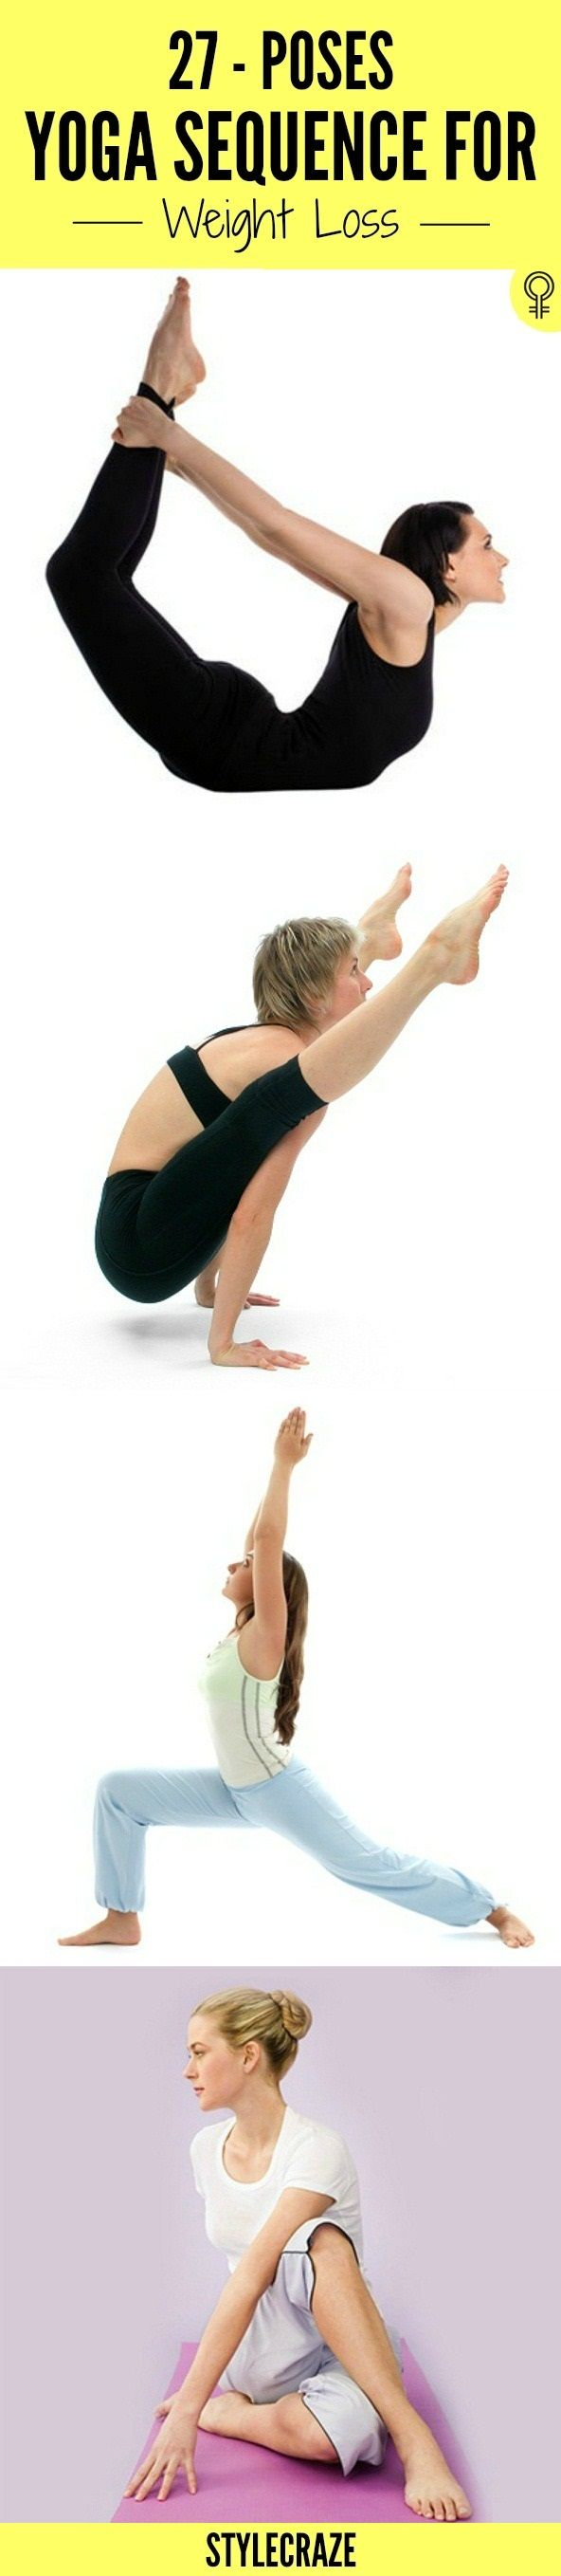 how to lose weight with yoga and diet